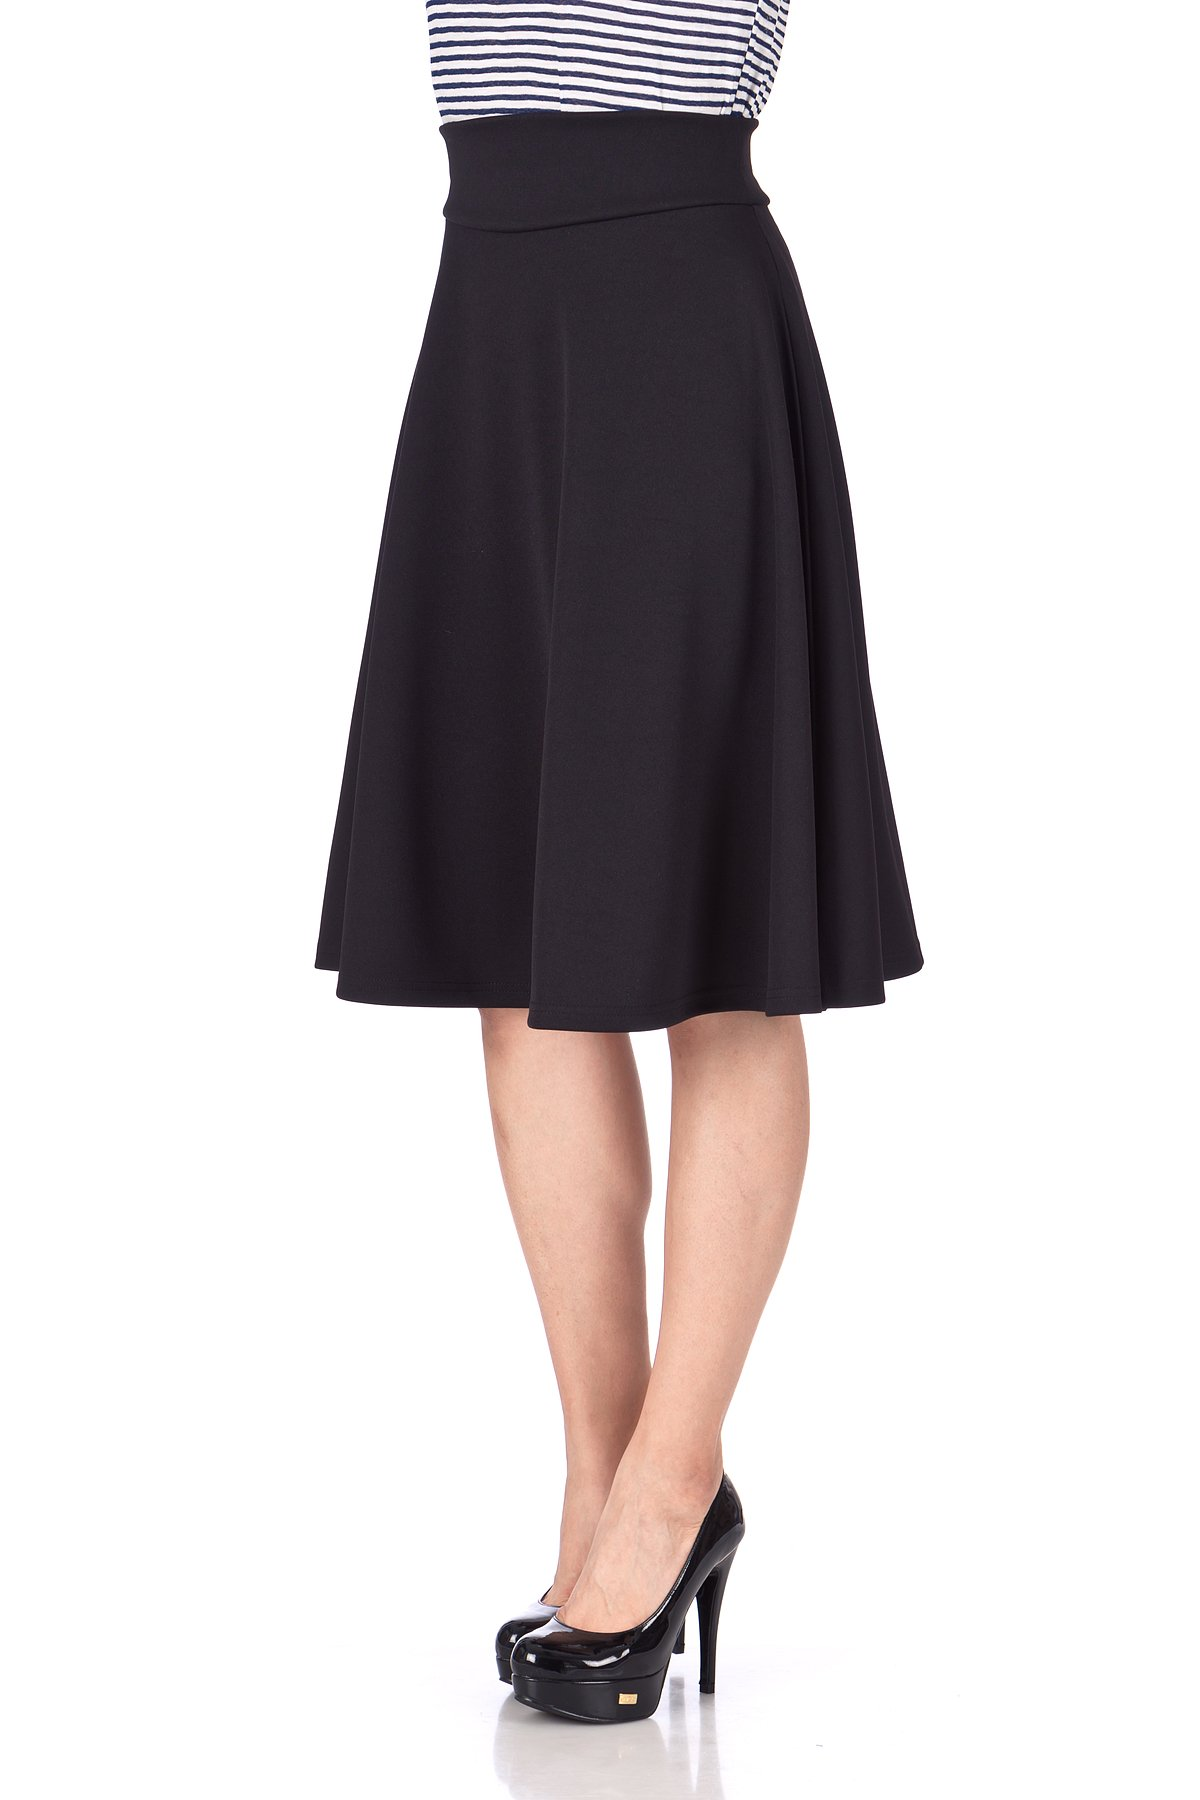 Stunning Wide High Waist A line Full Flared Swing Office Dance Party Casual Circle Skater Midi Skirt Black 06